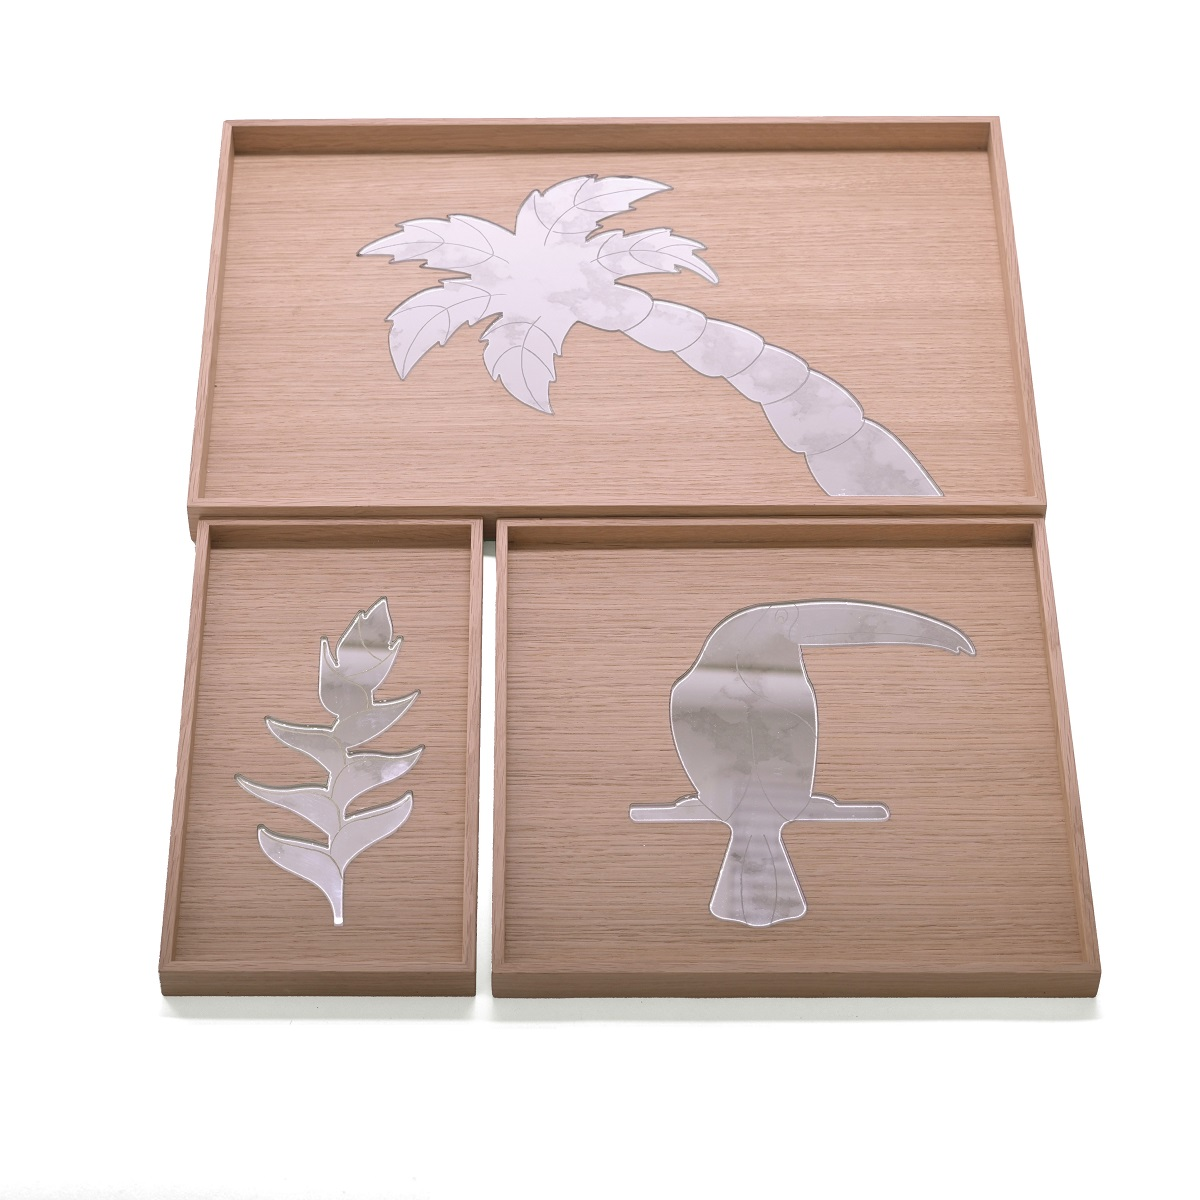 casarialto atelier tropical reflections set of 3 trays a rv1 coversmall